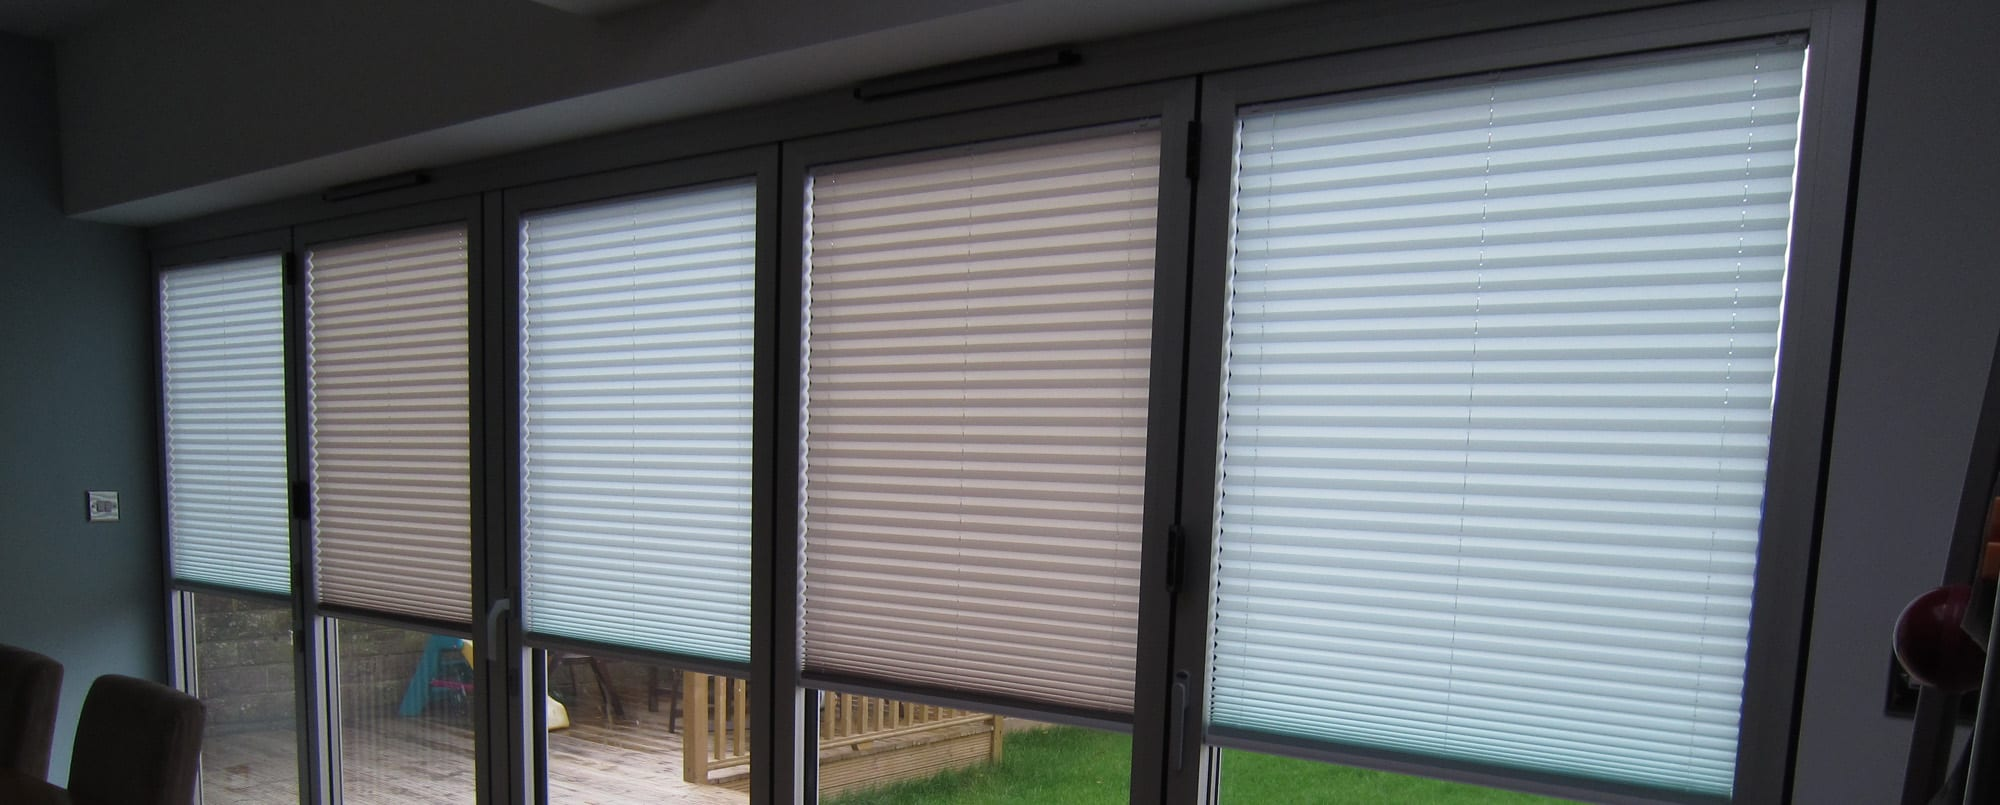 Bifold blinds pulled half way down.